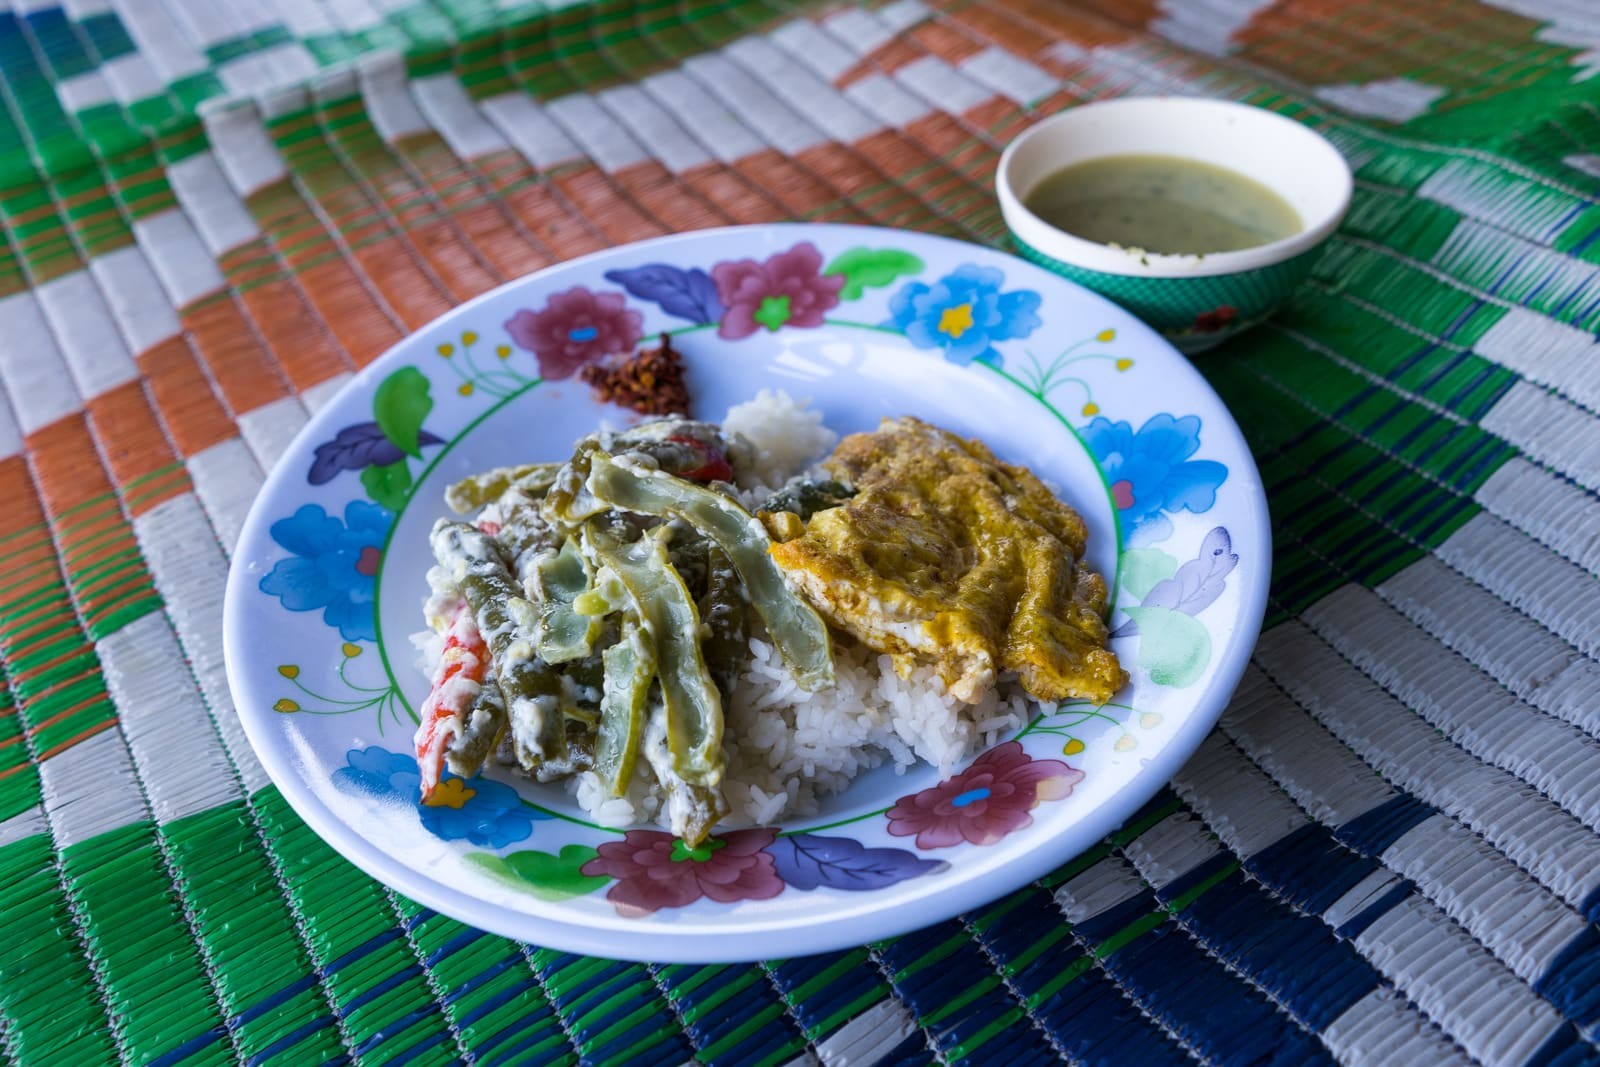 Off the beaten track in Bhutan - Ema datsi, a traditional Bhutanese dish of chilies and cheese - Lost With Purpose travel blog